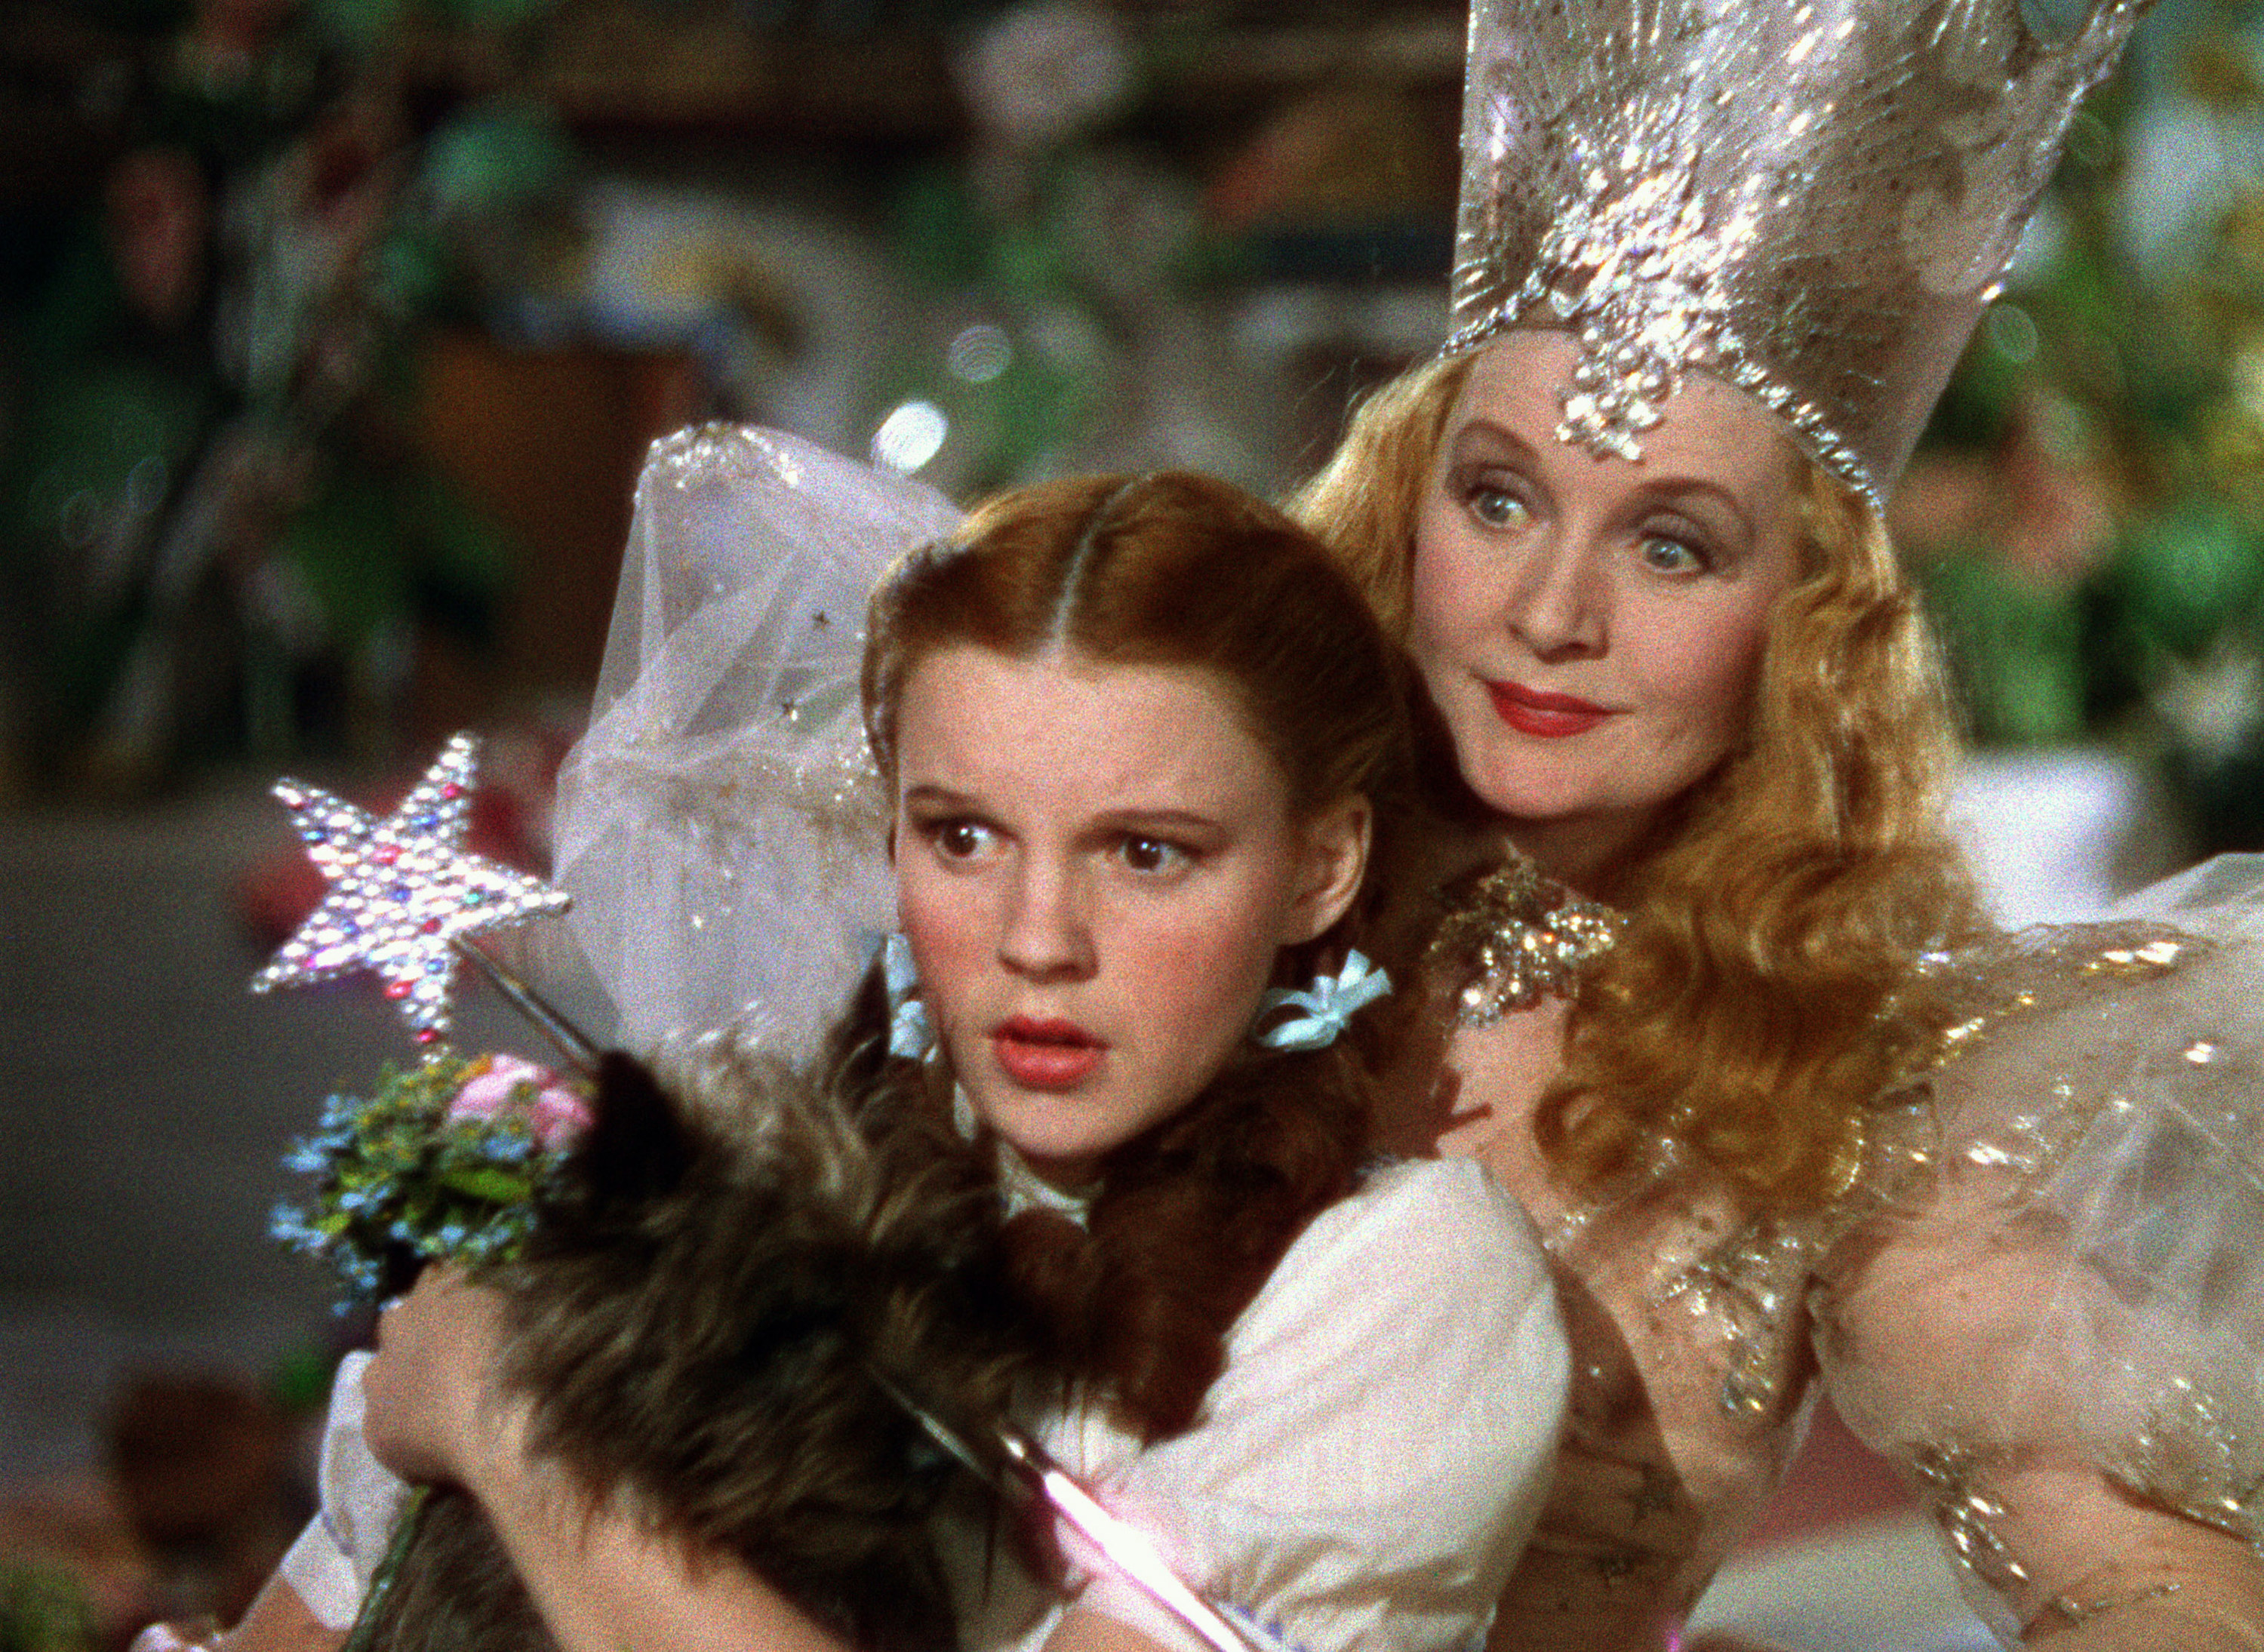 """Judy Garland as Dorothy with Glinda the Good Witch, played by Billie Burke, in """"The Wizard of Oz"""""""